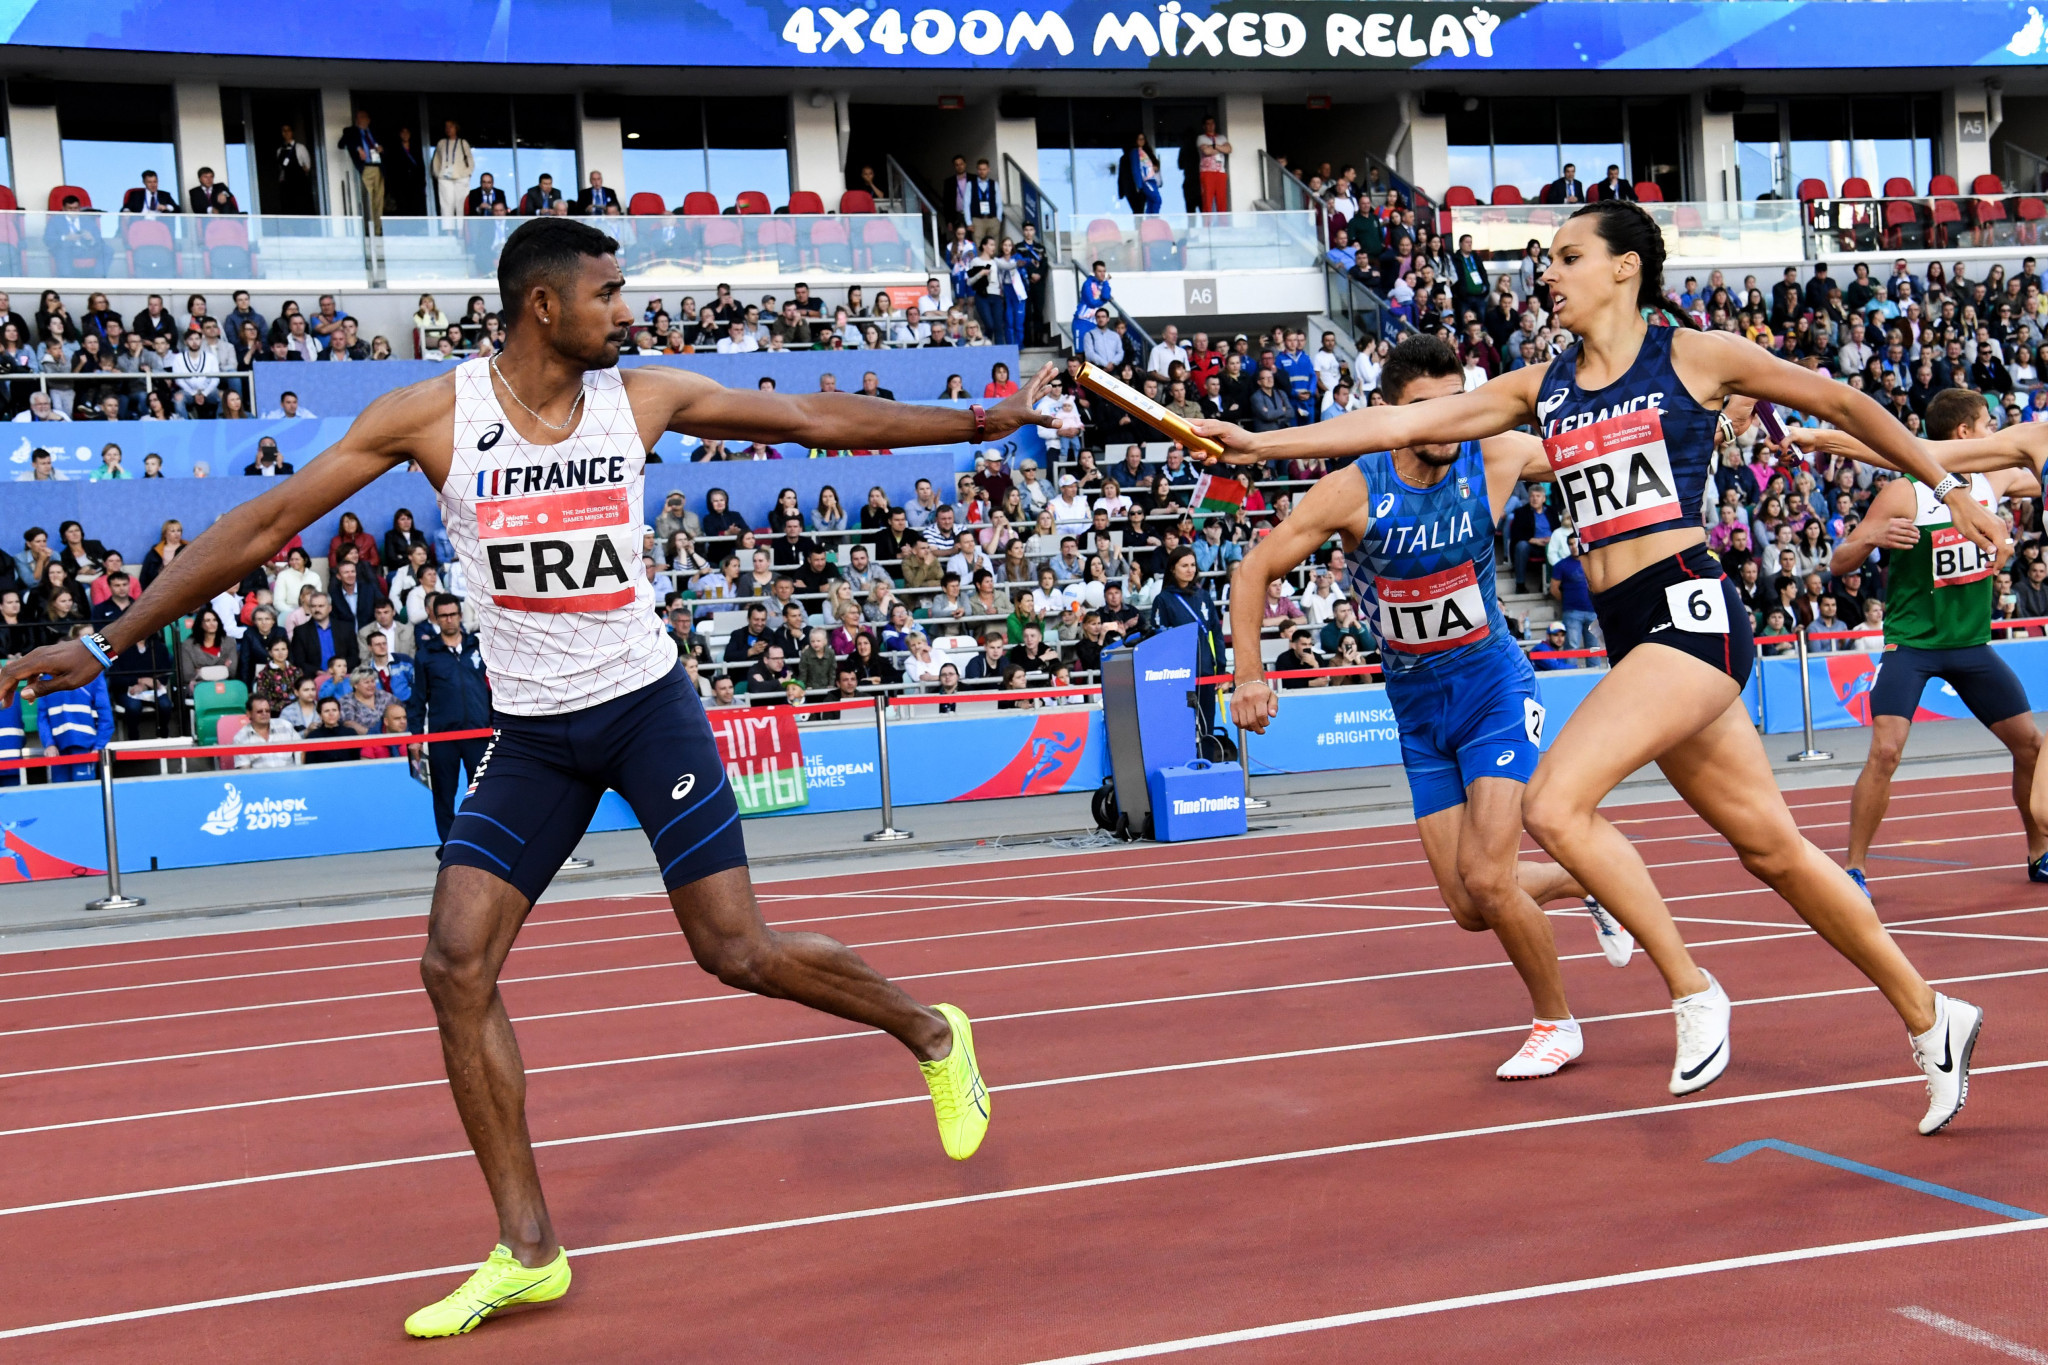 European Athletics trialled